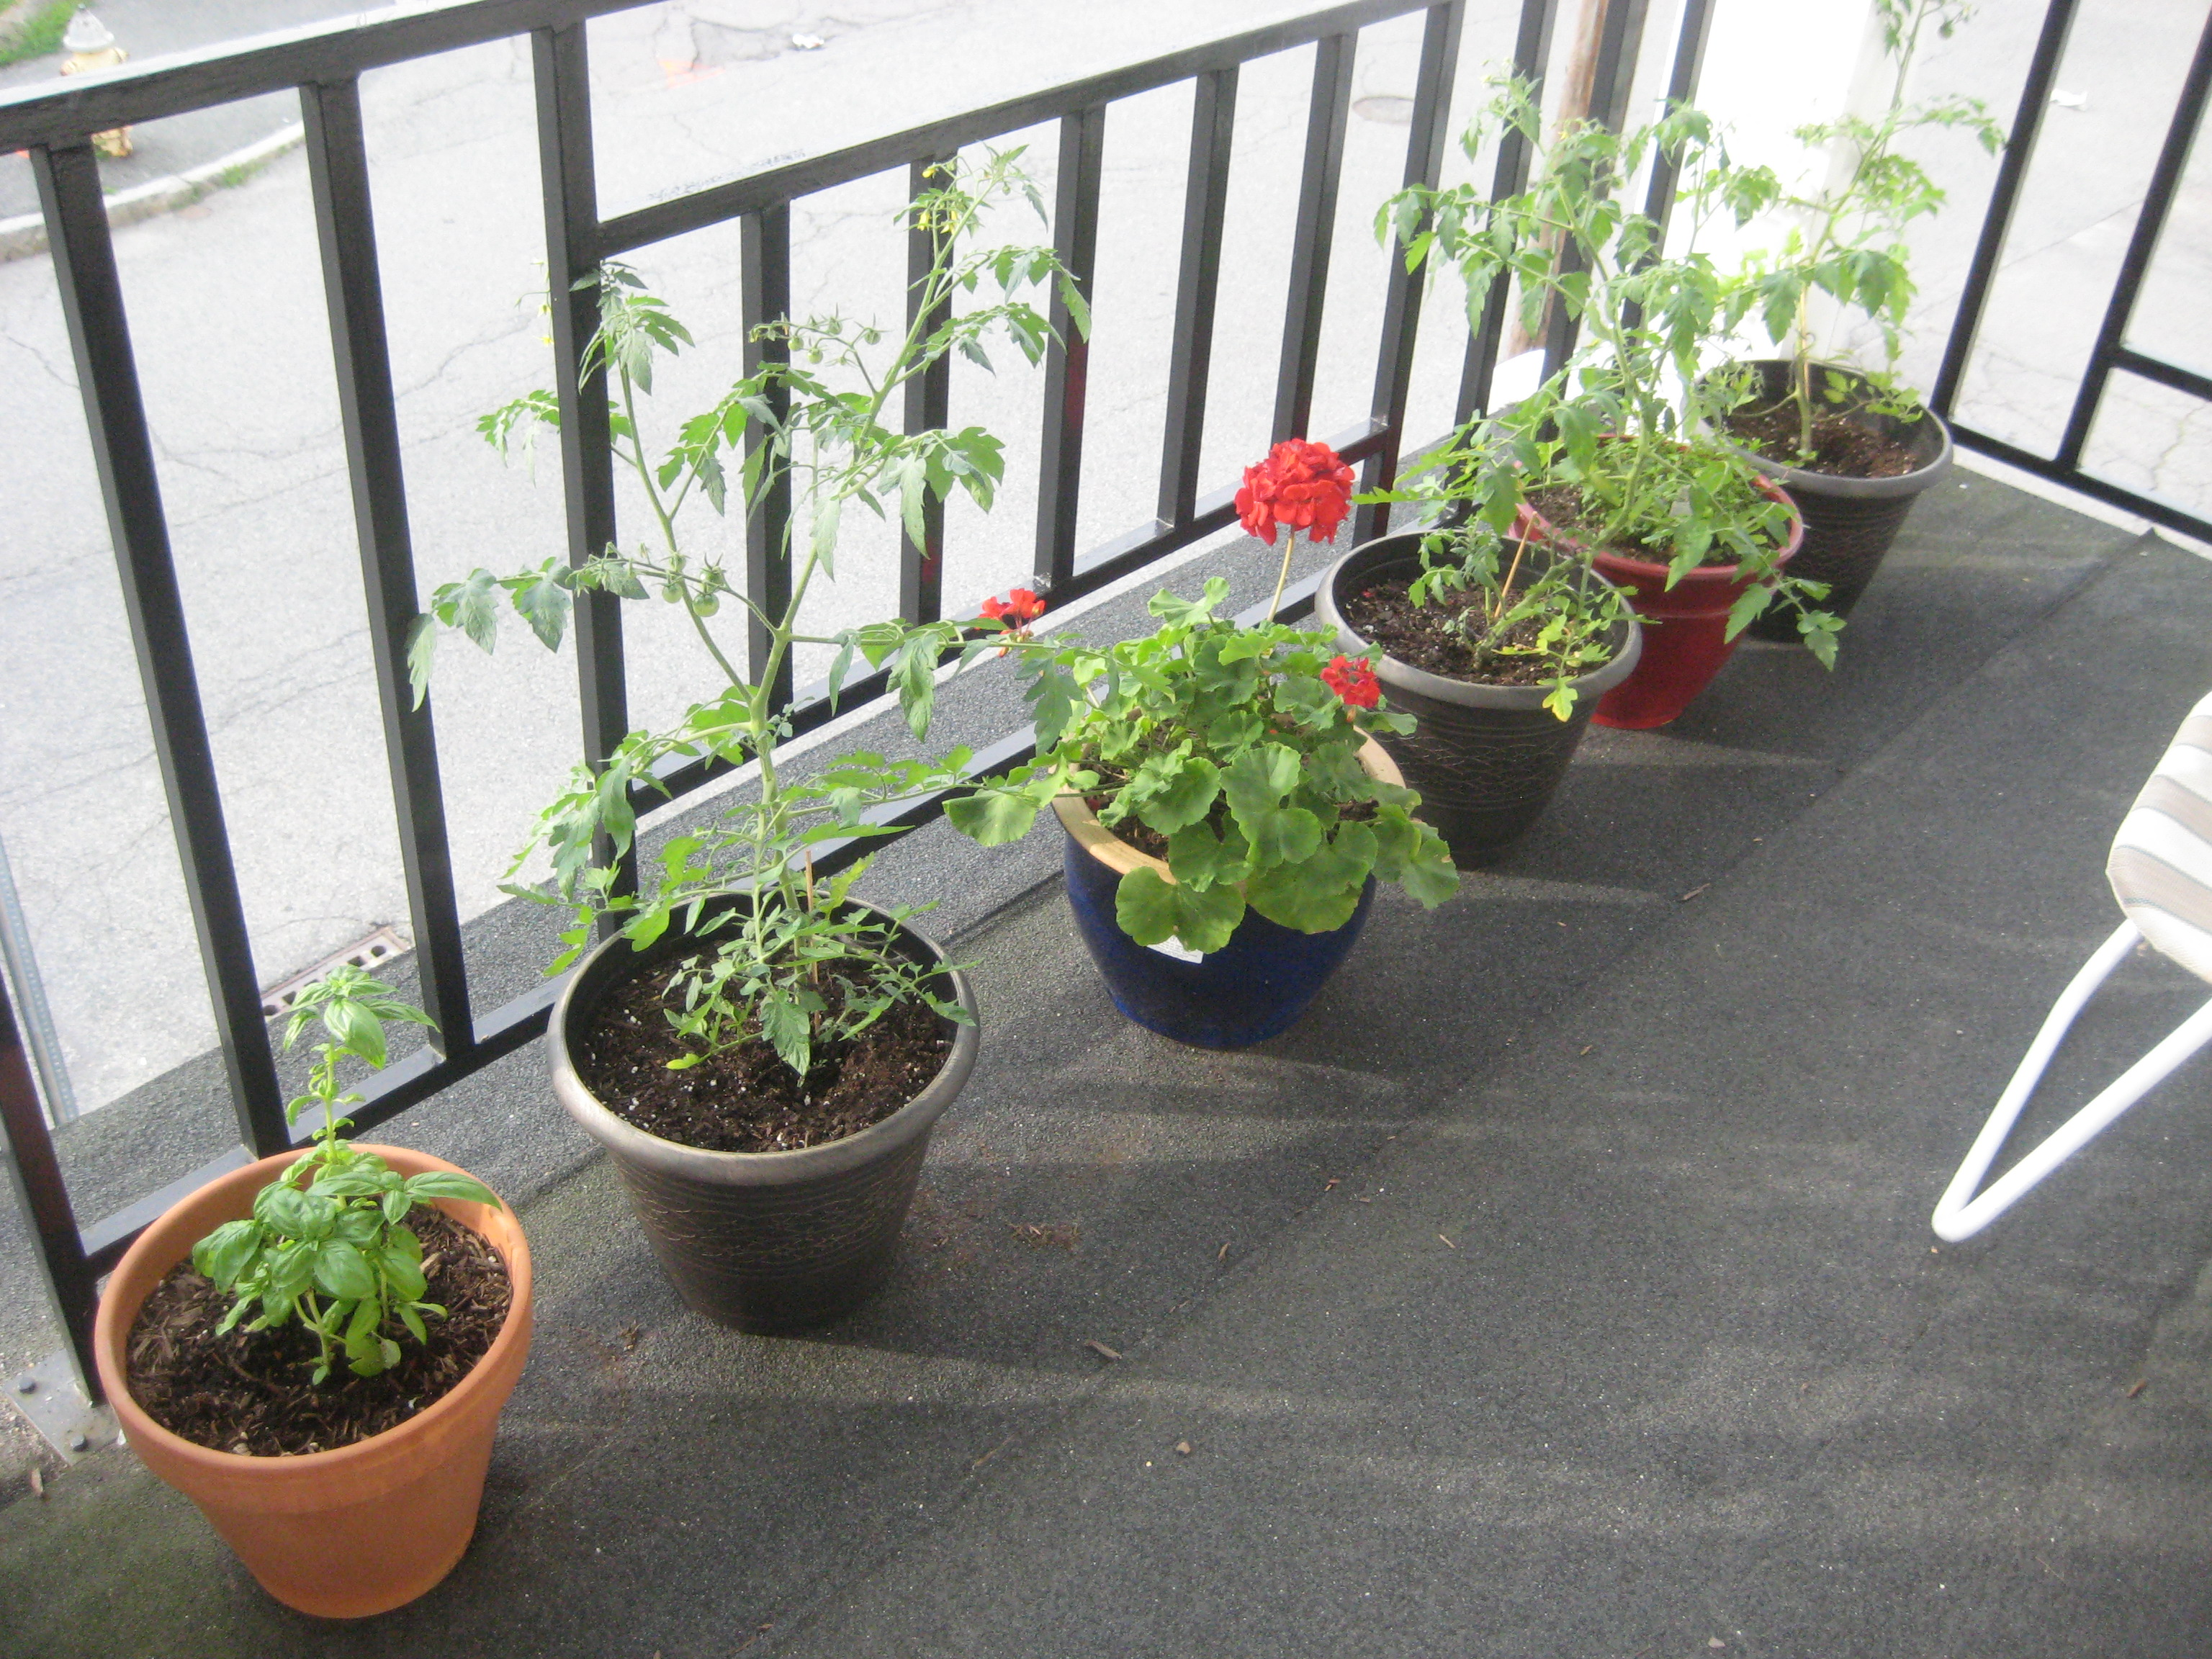 Balcony garden update cakes tea and dreams for Balcony vegetable garden ideas